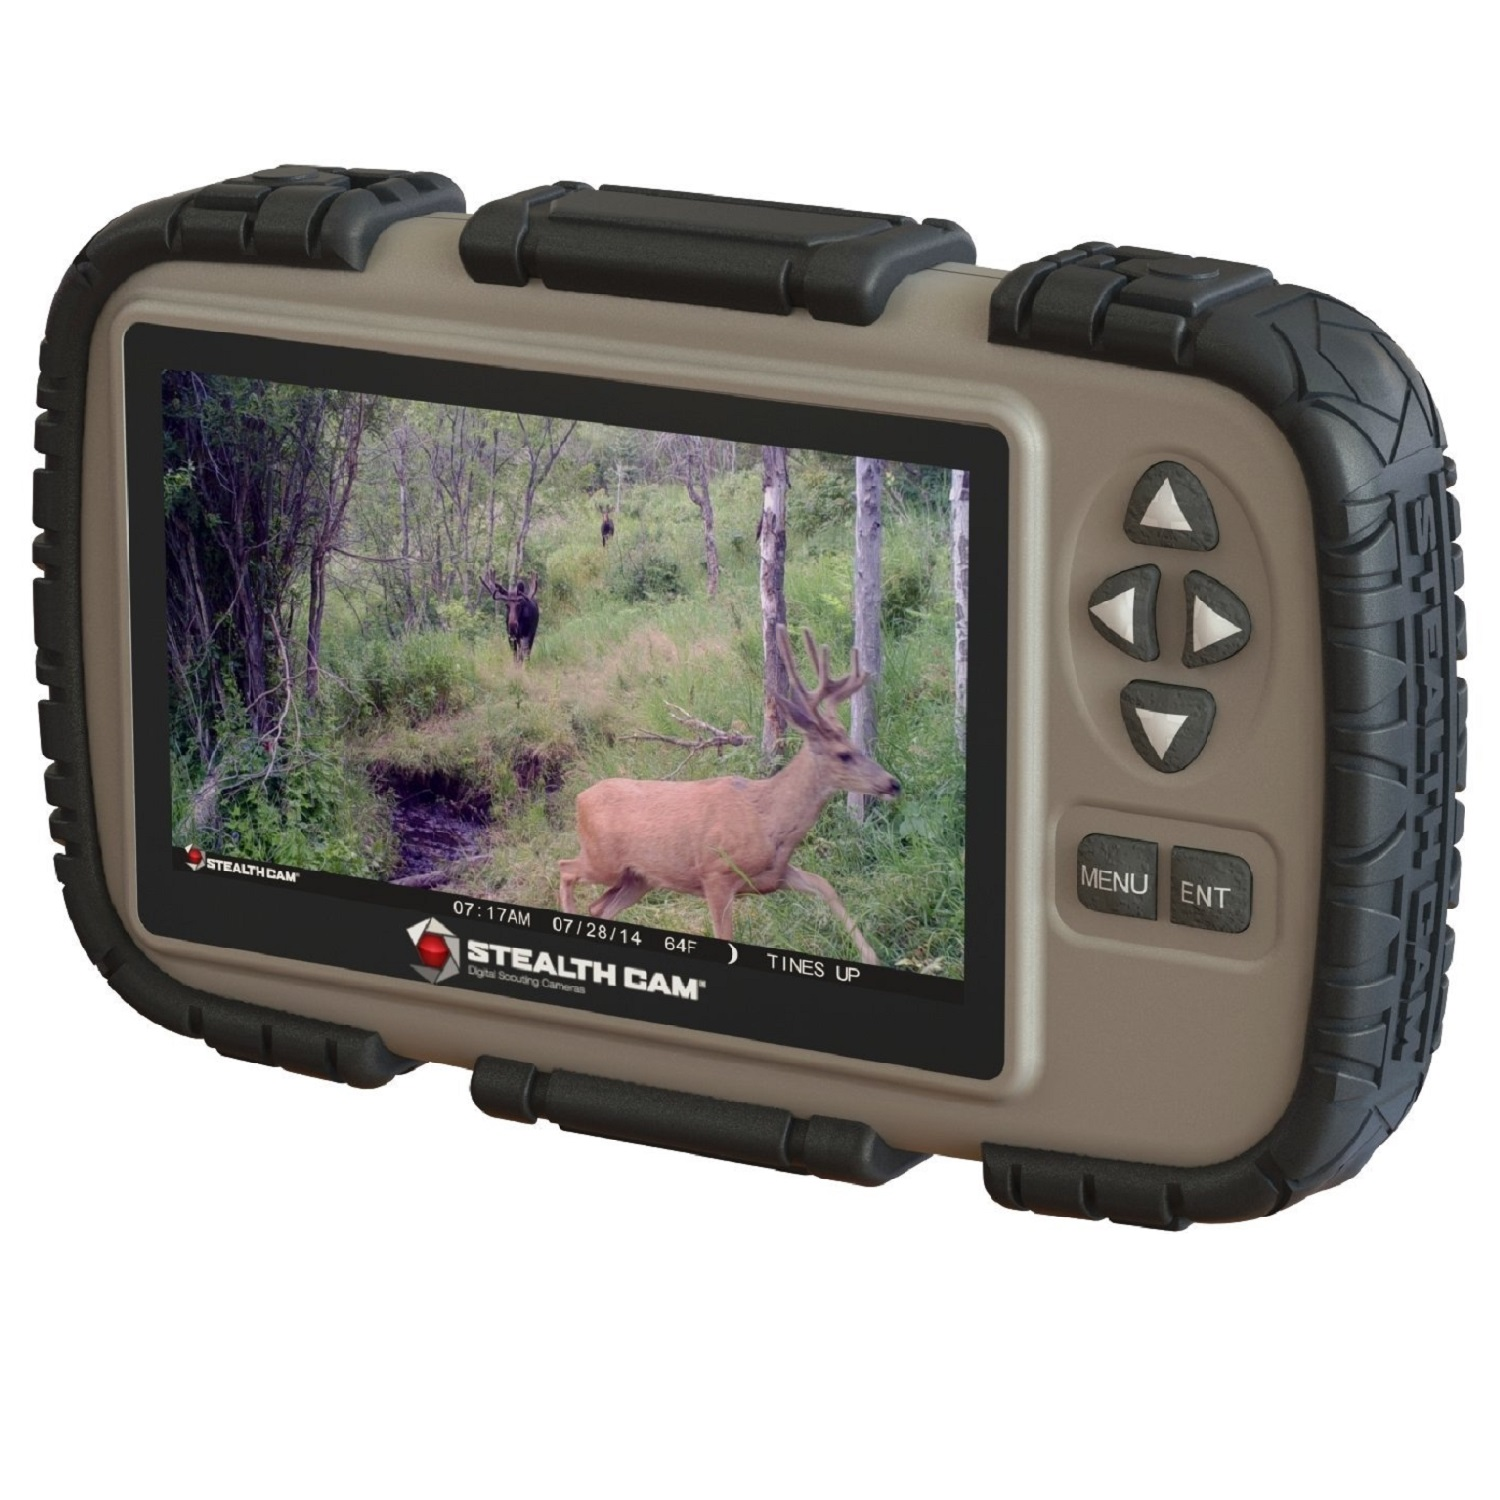 Stealth Cam SD Card Reader and Viewer with 4 3